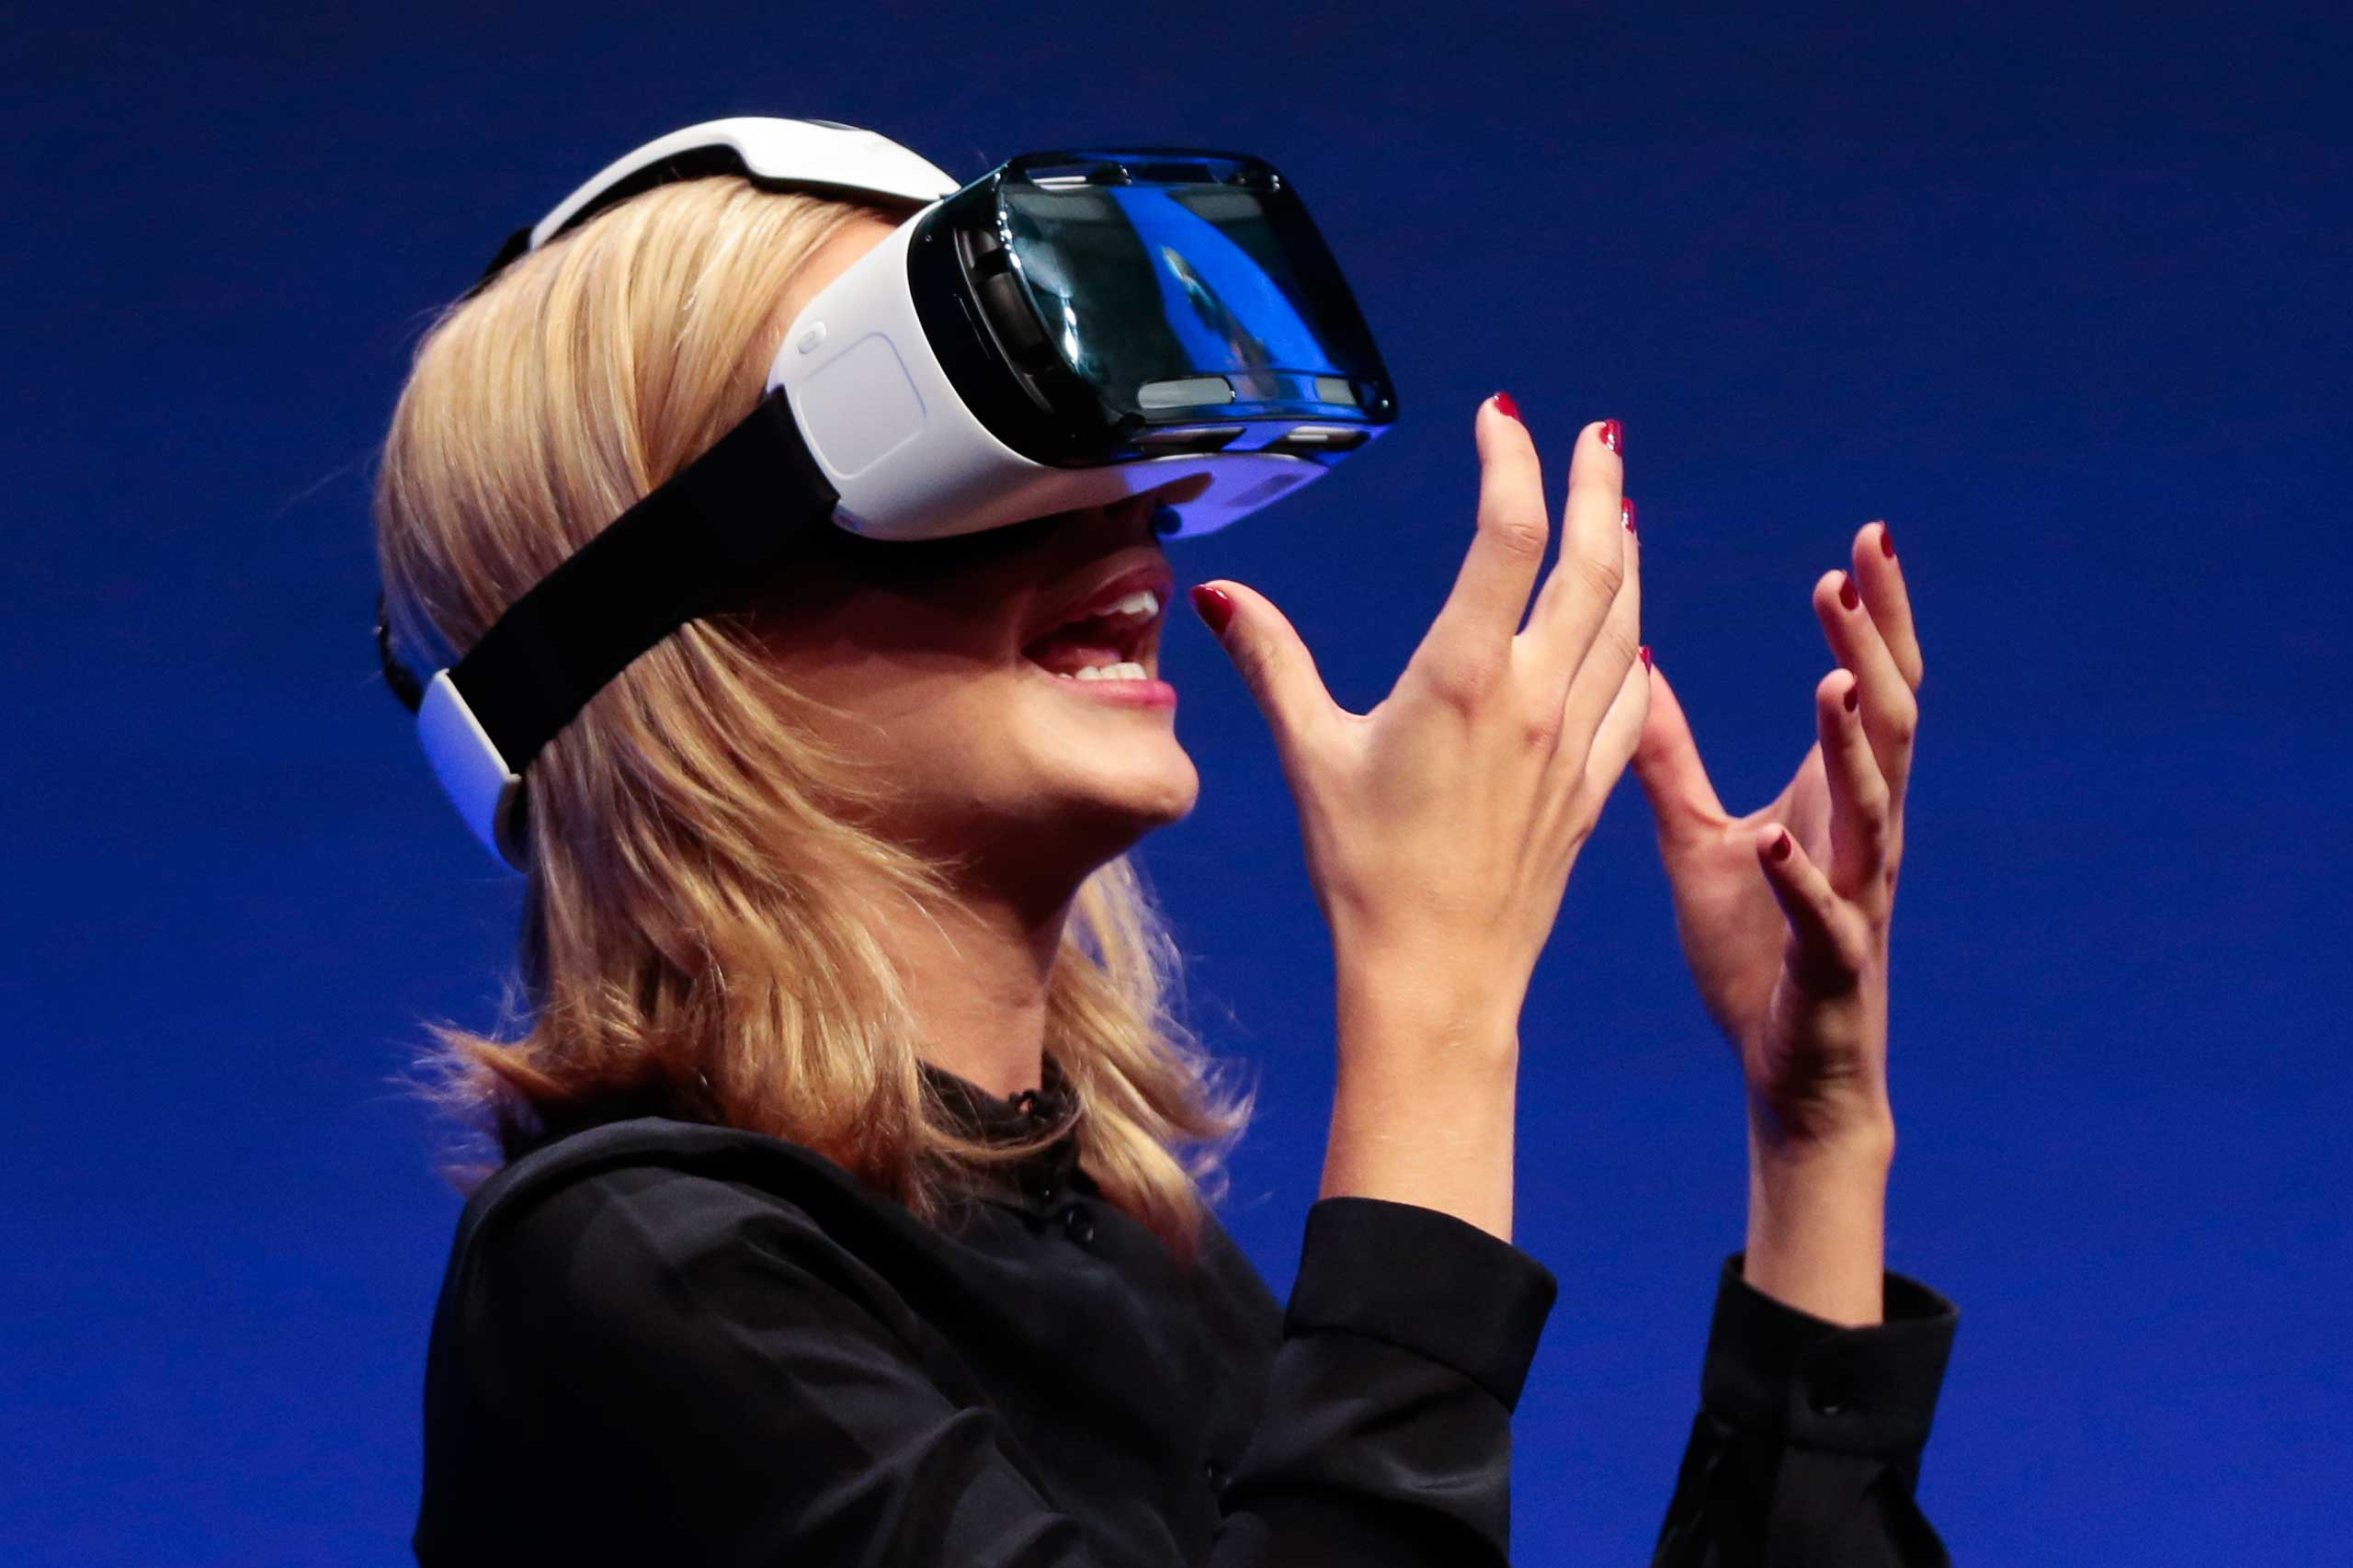 <strong>2014</strong>                                                                      British television presenter Rachel Riley showed a virtual-reality headset called Gear VR during a Samsung event ahead of the consumer electronic fair IFA in Berlin.